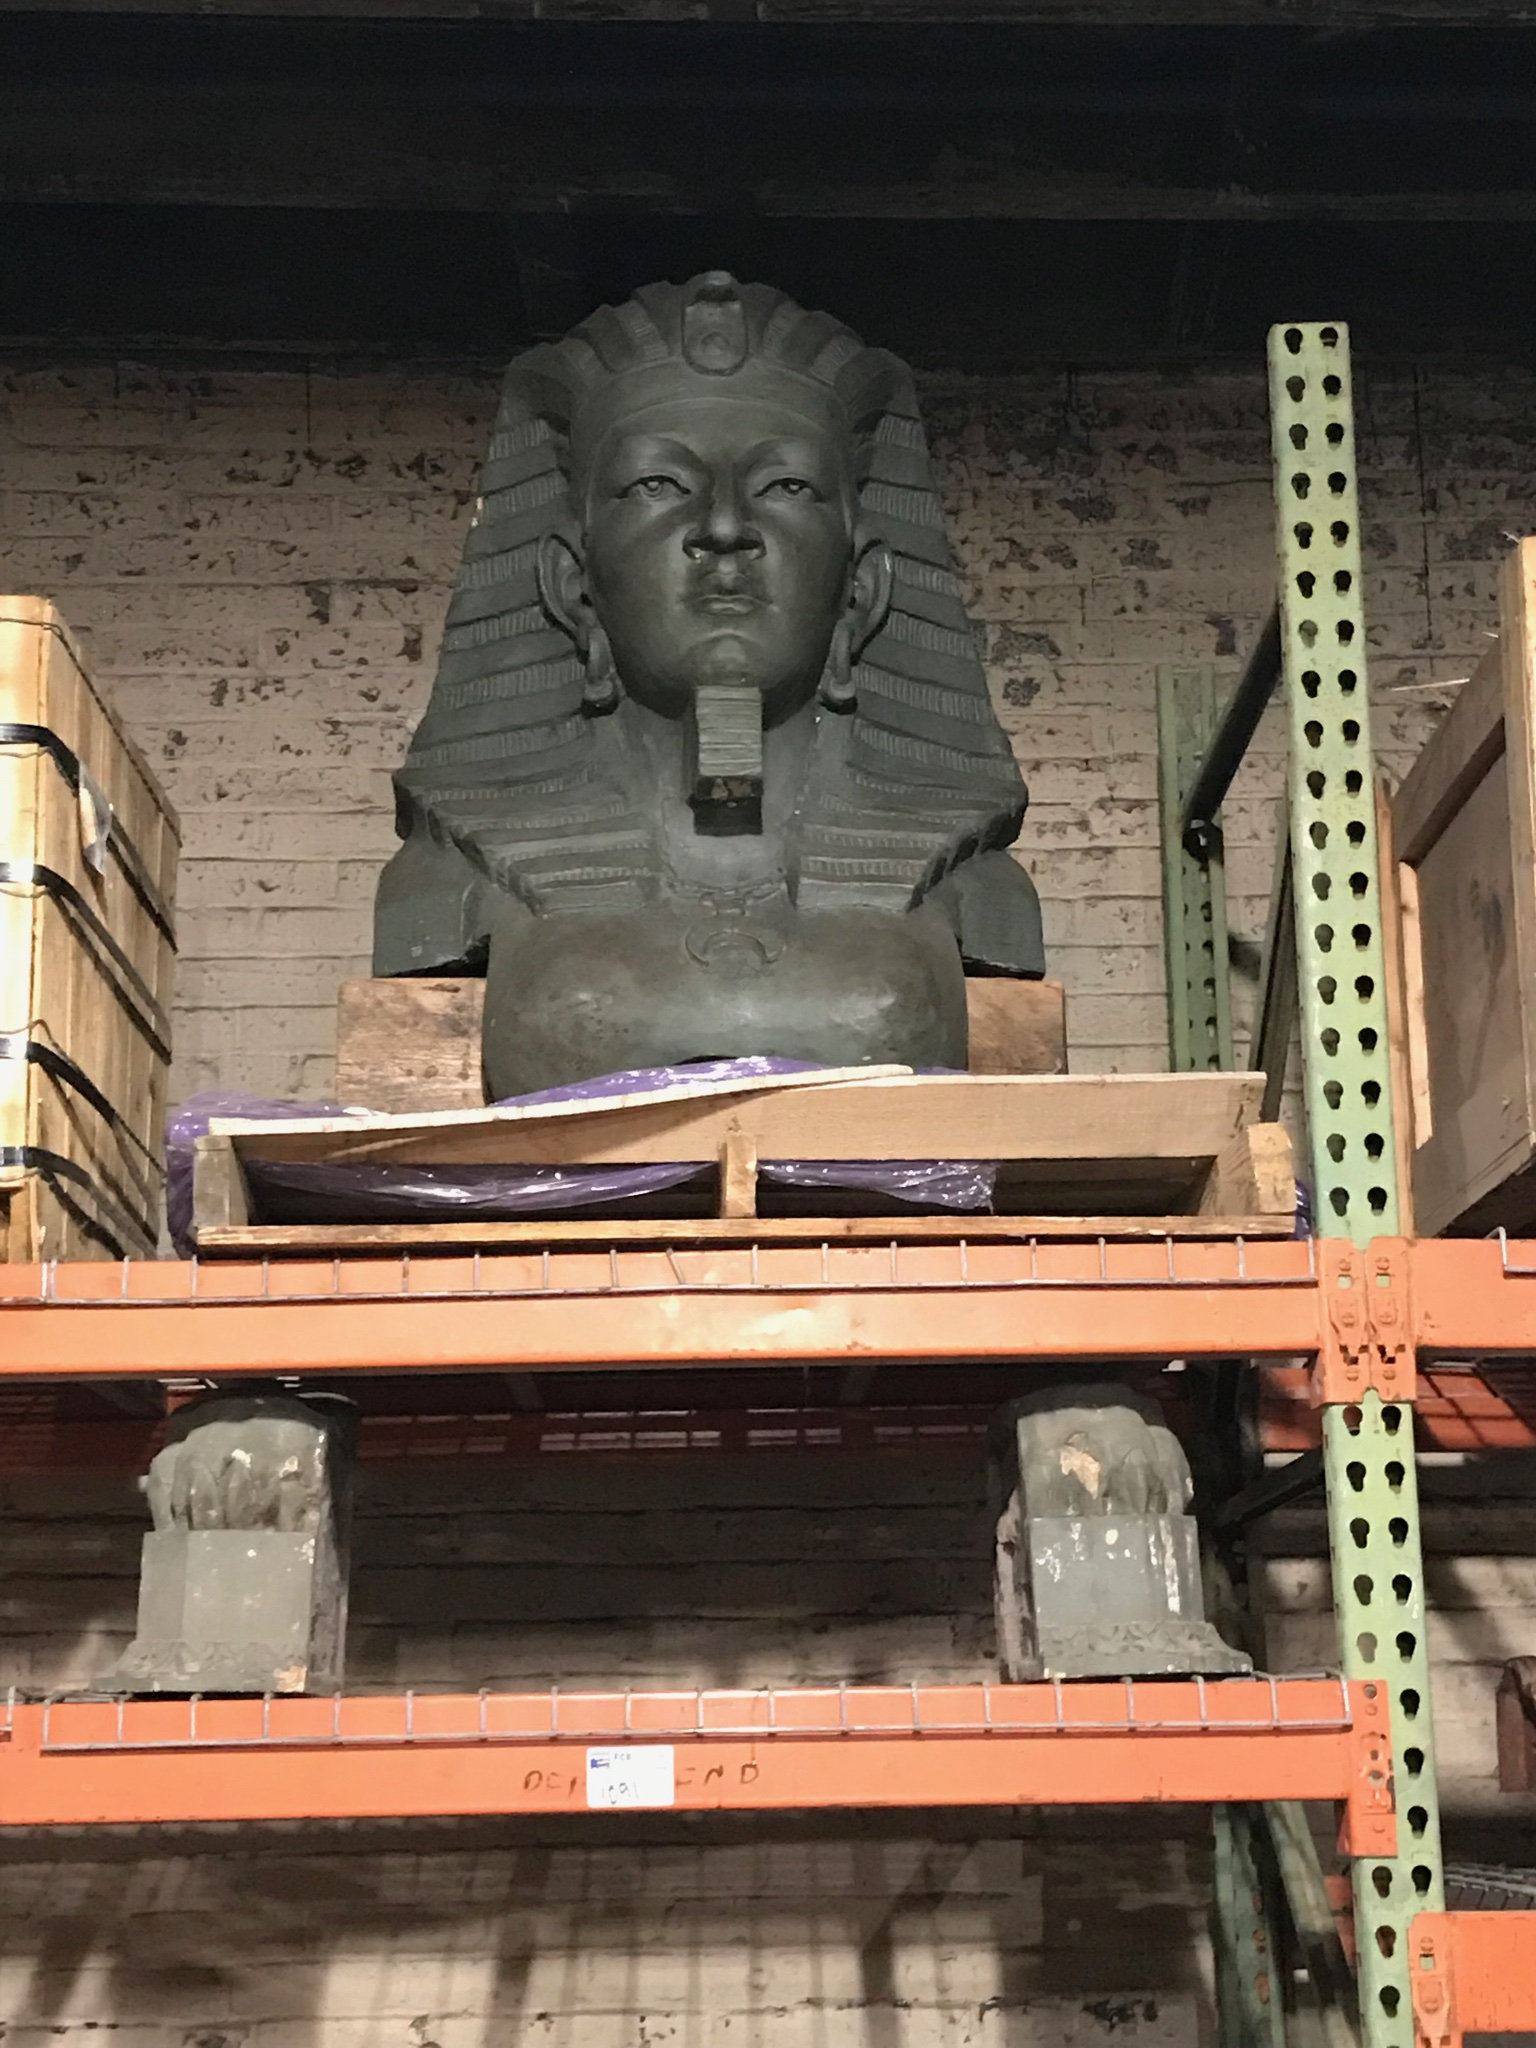 Sphinx from the Shrine Mosque-Mohammed Temple in Peoria Ill.